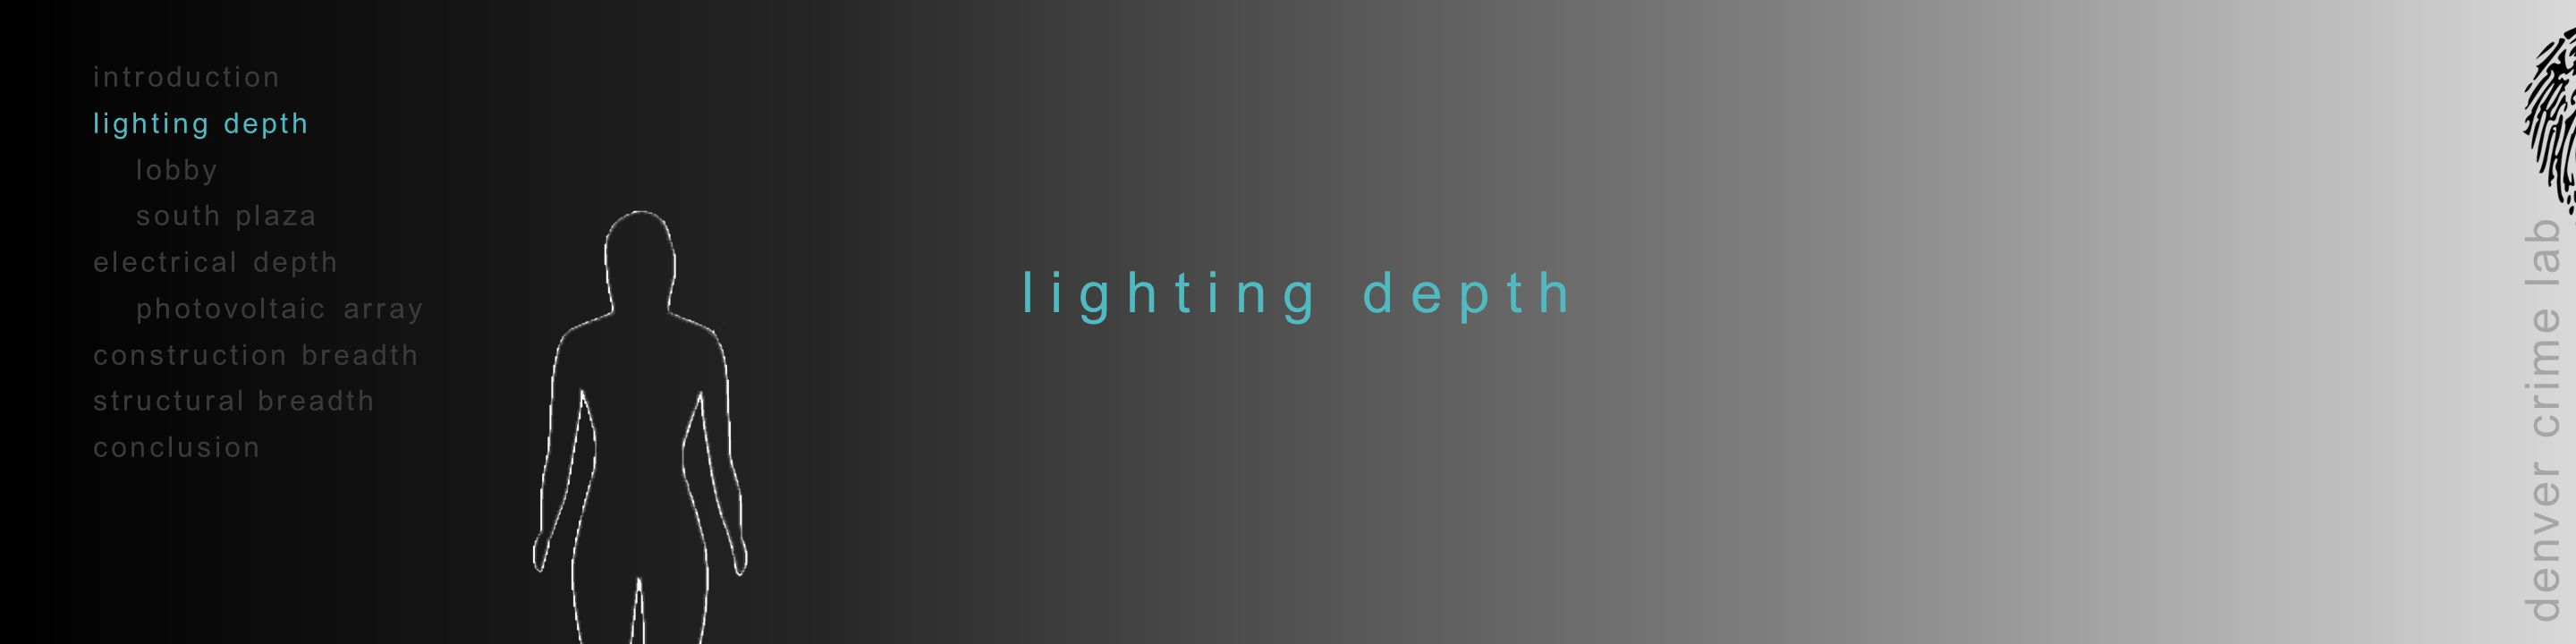 introduction lighting depth lobby south plaza electrical depth photovoltaic array construction breadth structural breadth conclusion denver crime lab concept individuality uniqueness one of a kind f i n g e r p r i n t